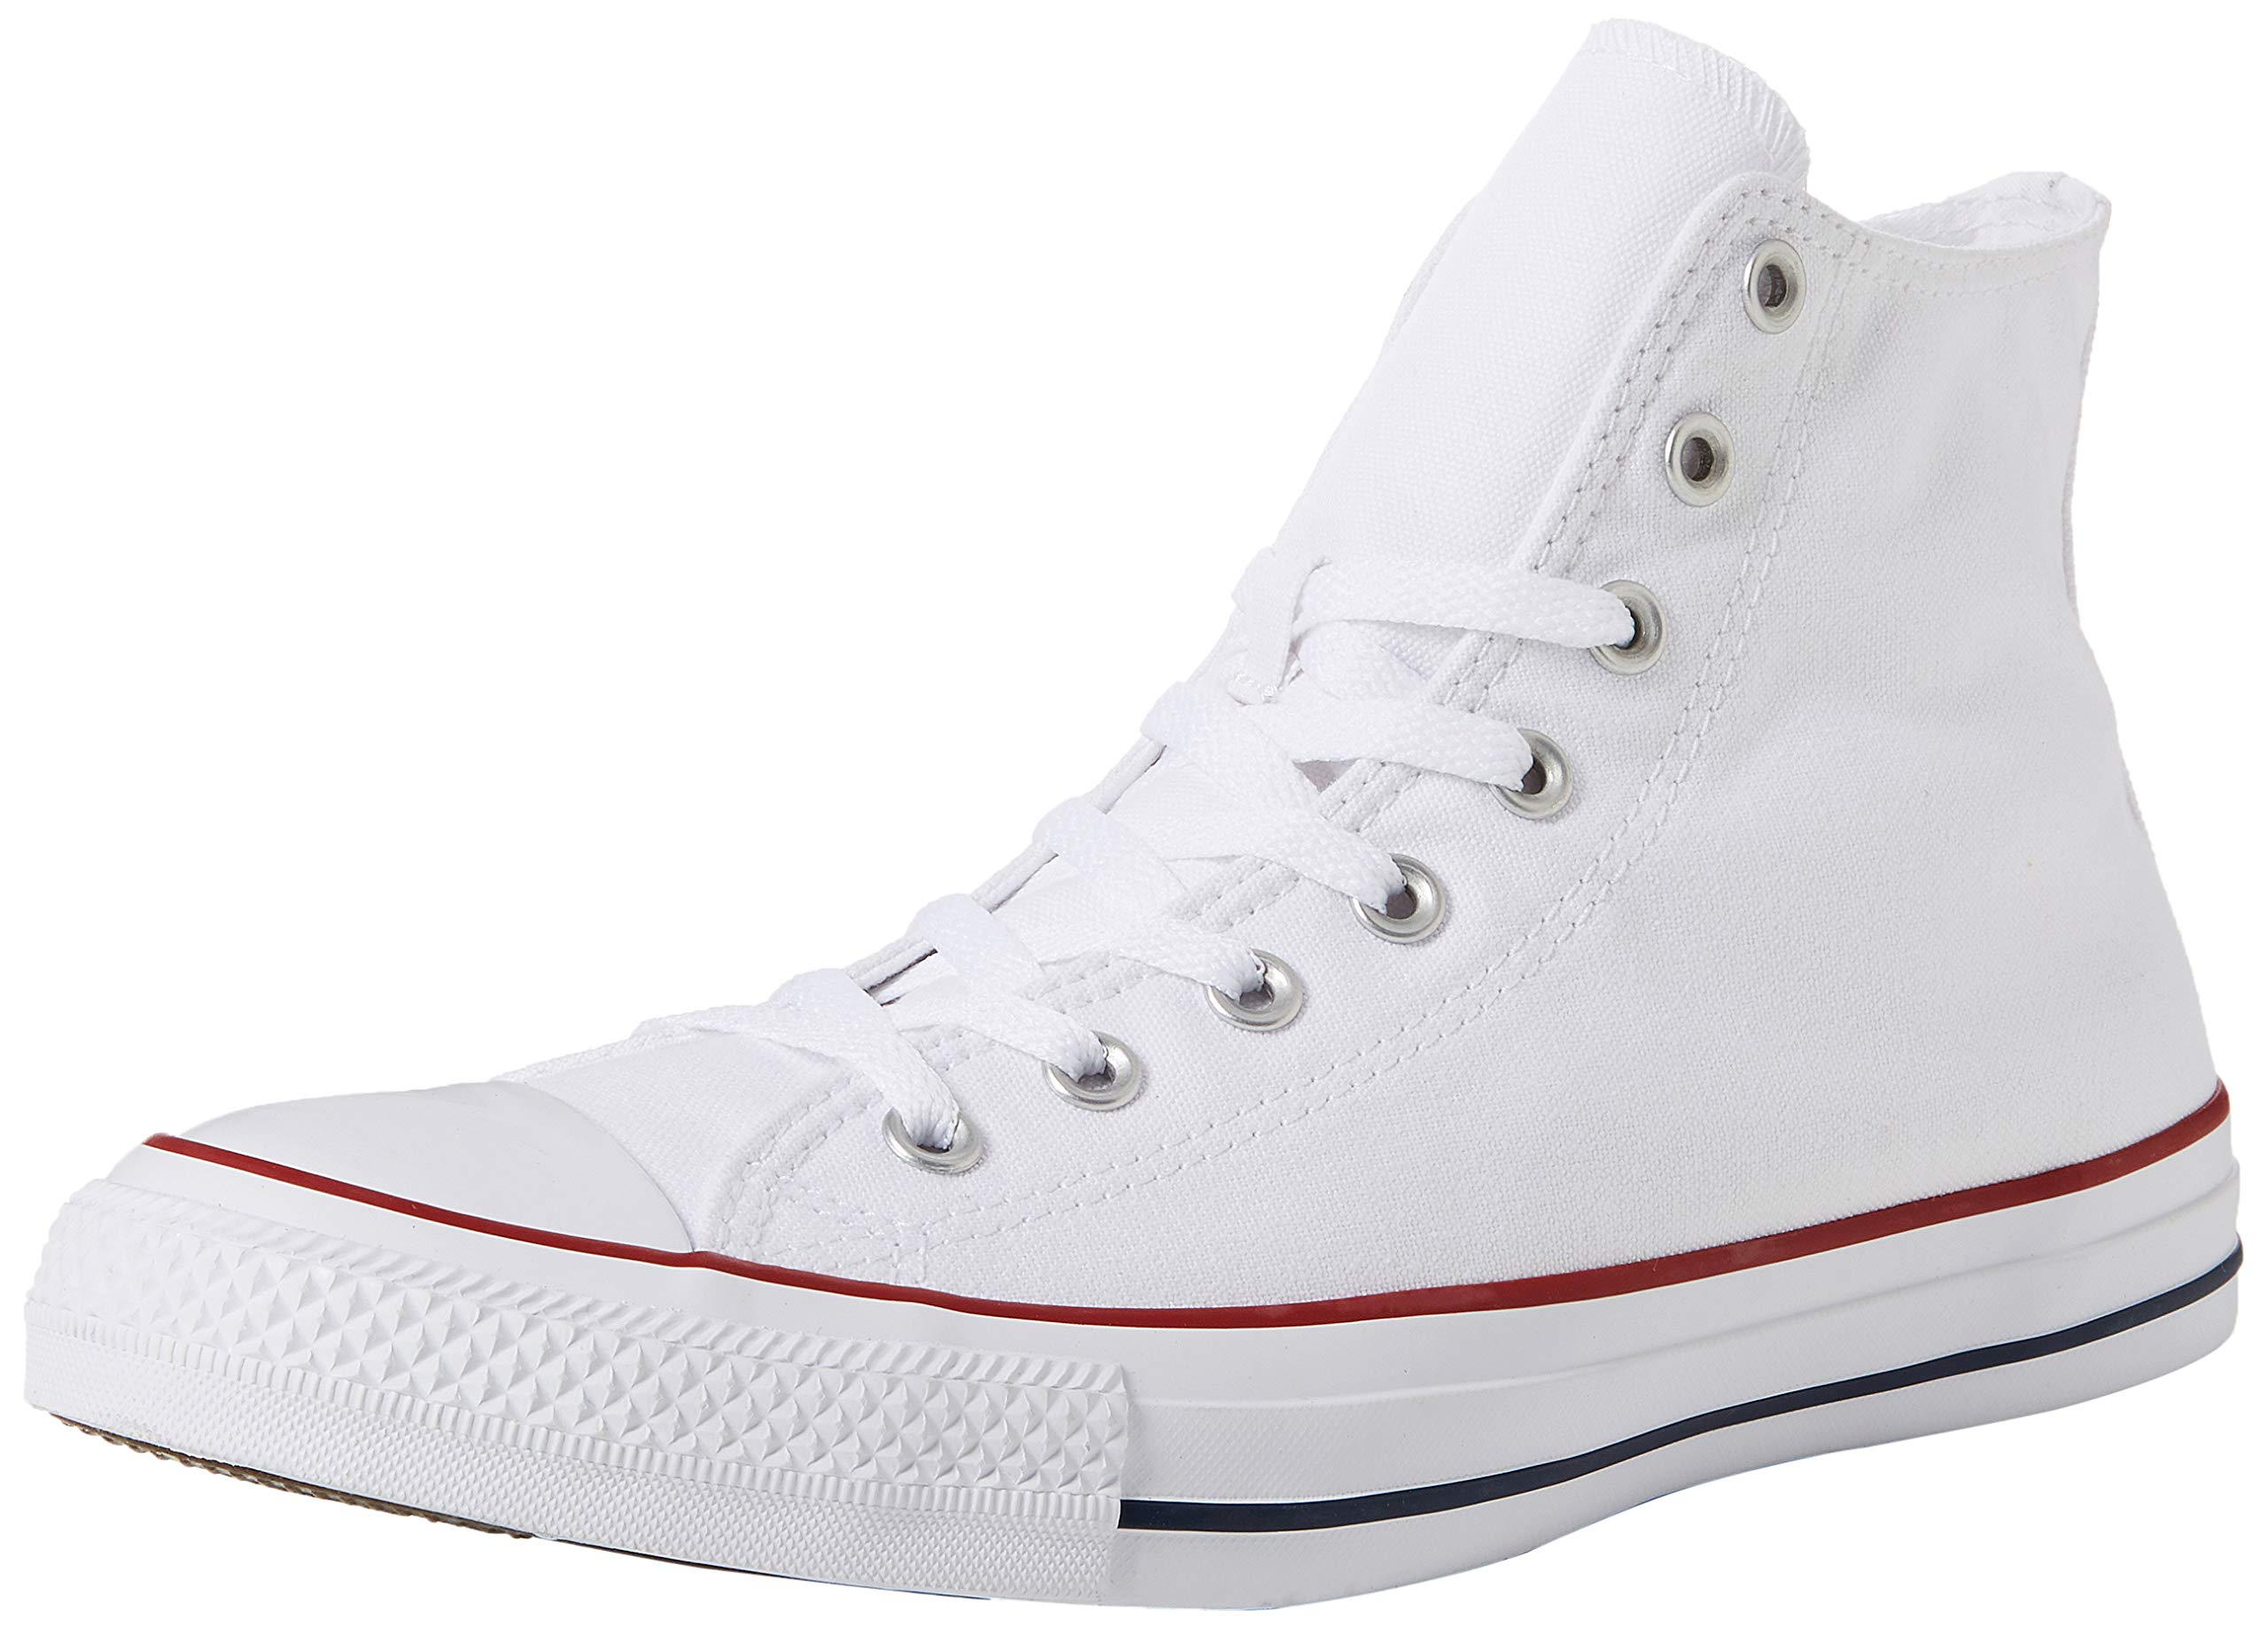 huge selection of e43c4 70bb8 Converse Unisex Chuck Taylor Classic Hi Sneaker